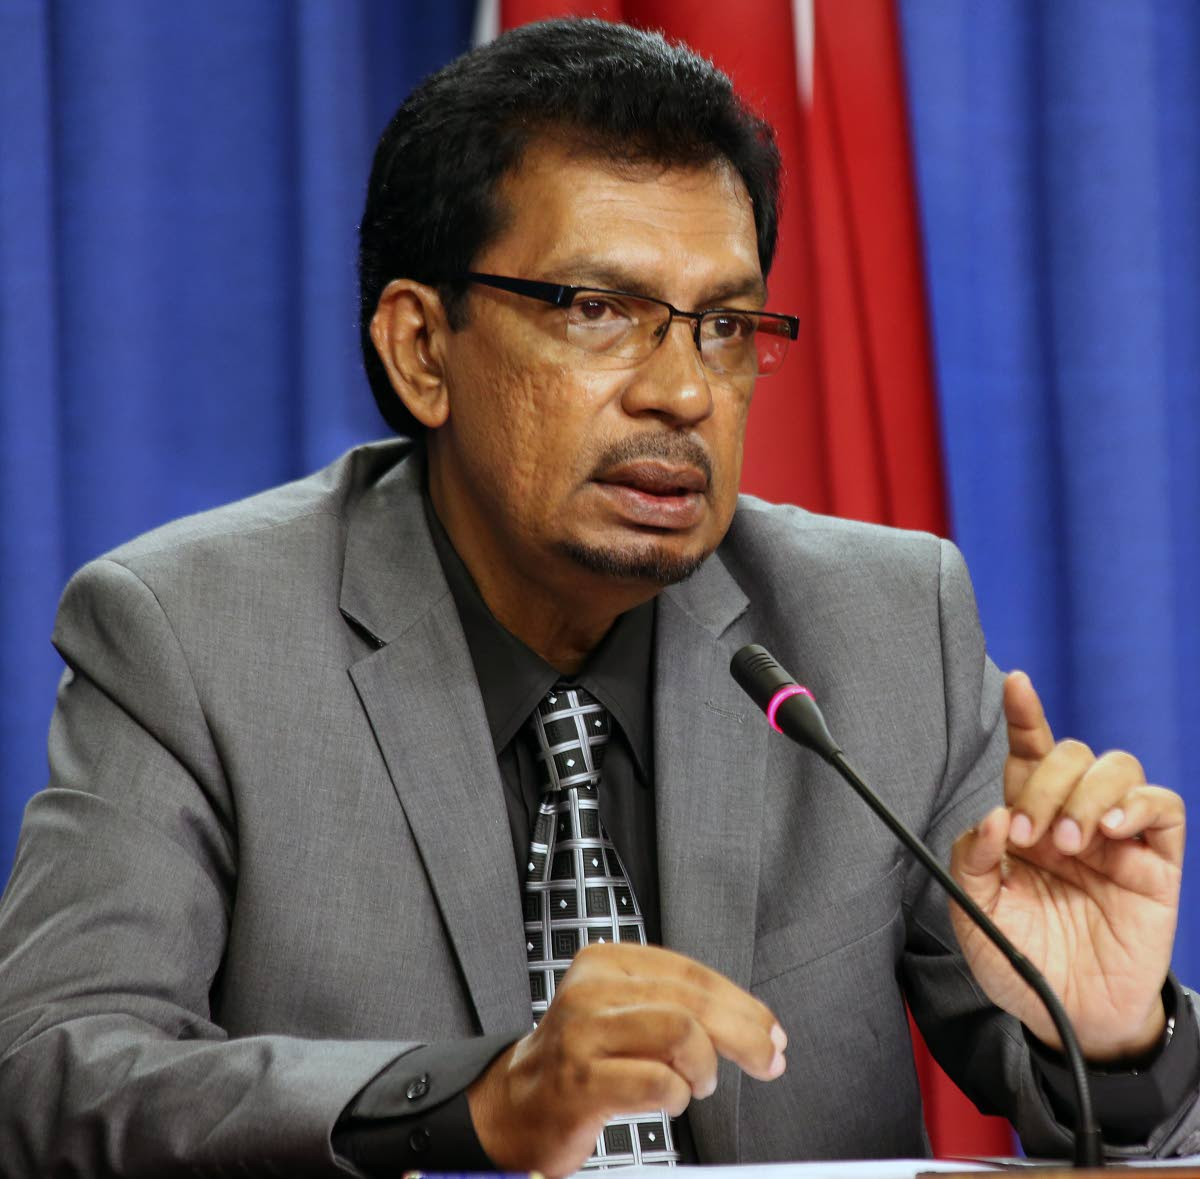 Rural Development and Local Government Minister Kazim Hosein.